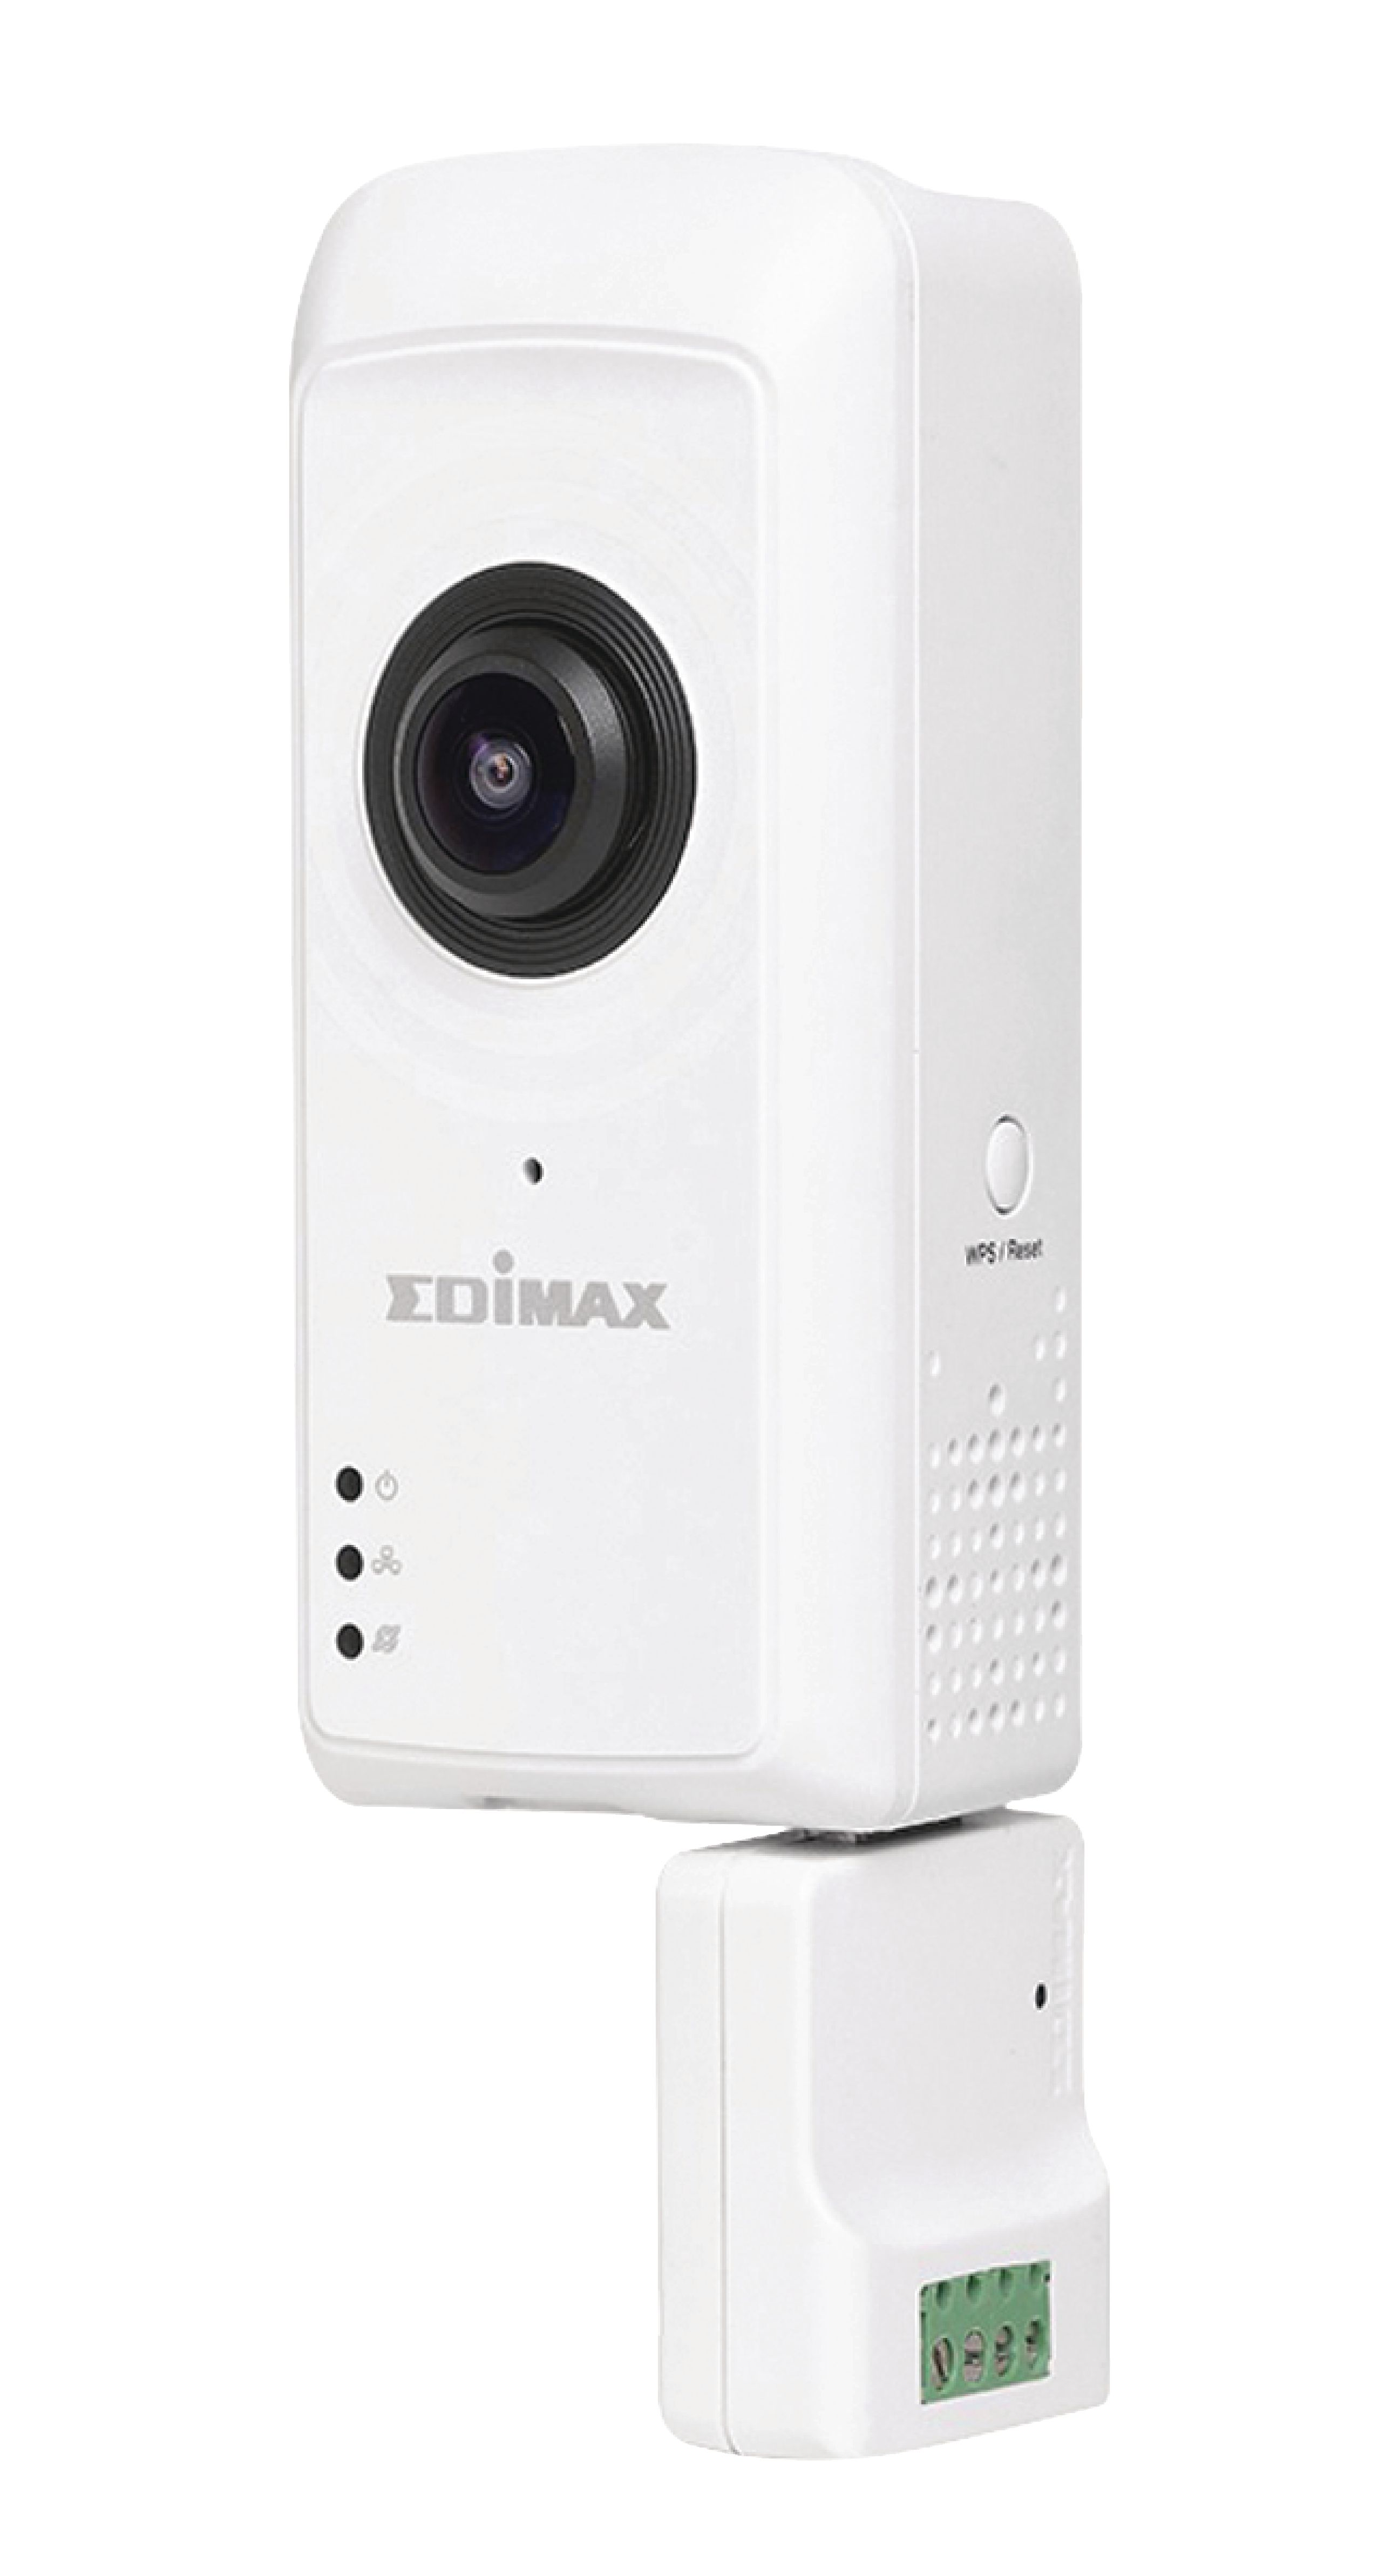 ic 5160gc edimax full hd cam ra ip pour maison connect e garage door camera 1920x1080. Black Bedroom Furniture Sets. Home Design Ideas